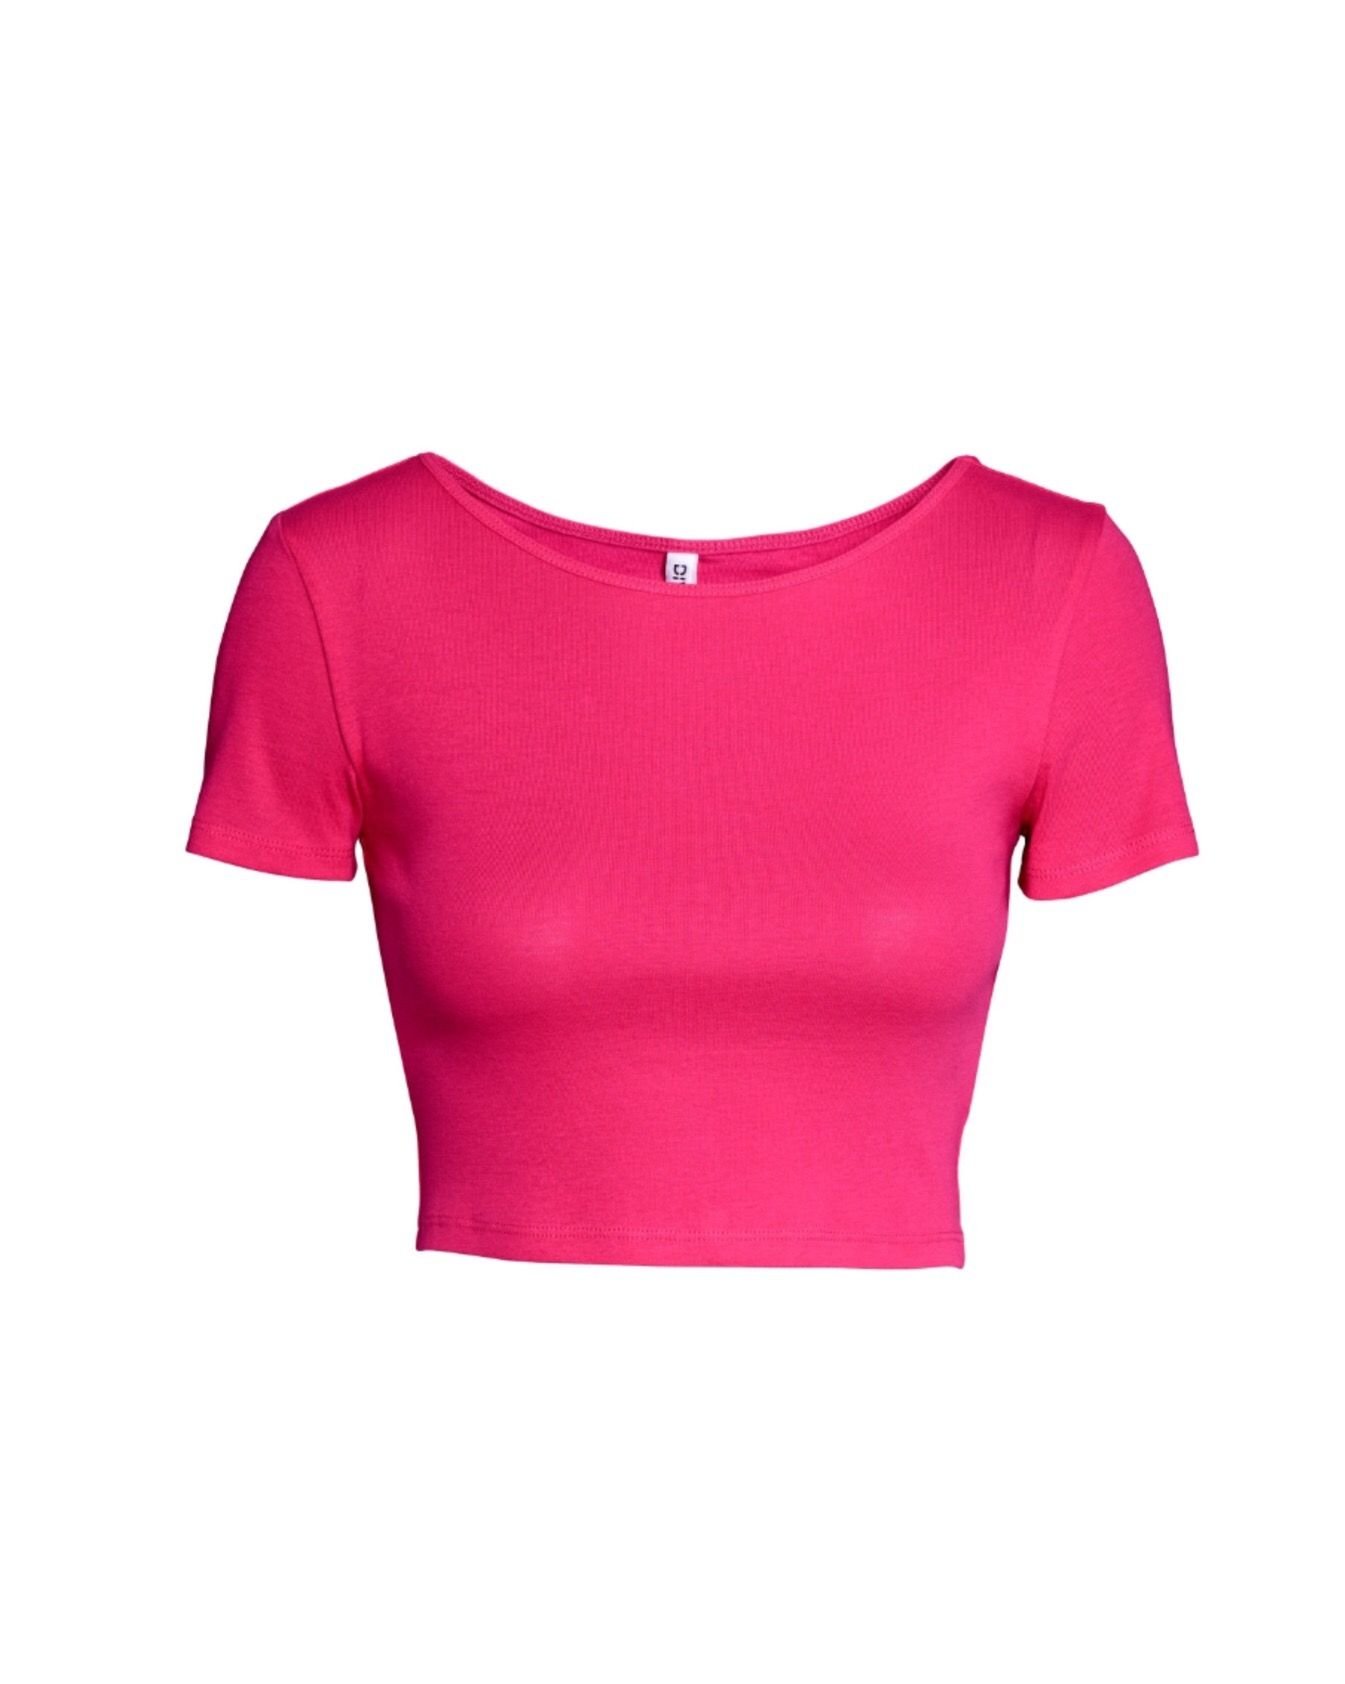 27e6db45d4f75 Buy H M Cropped Top online in Nigeria